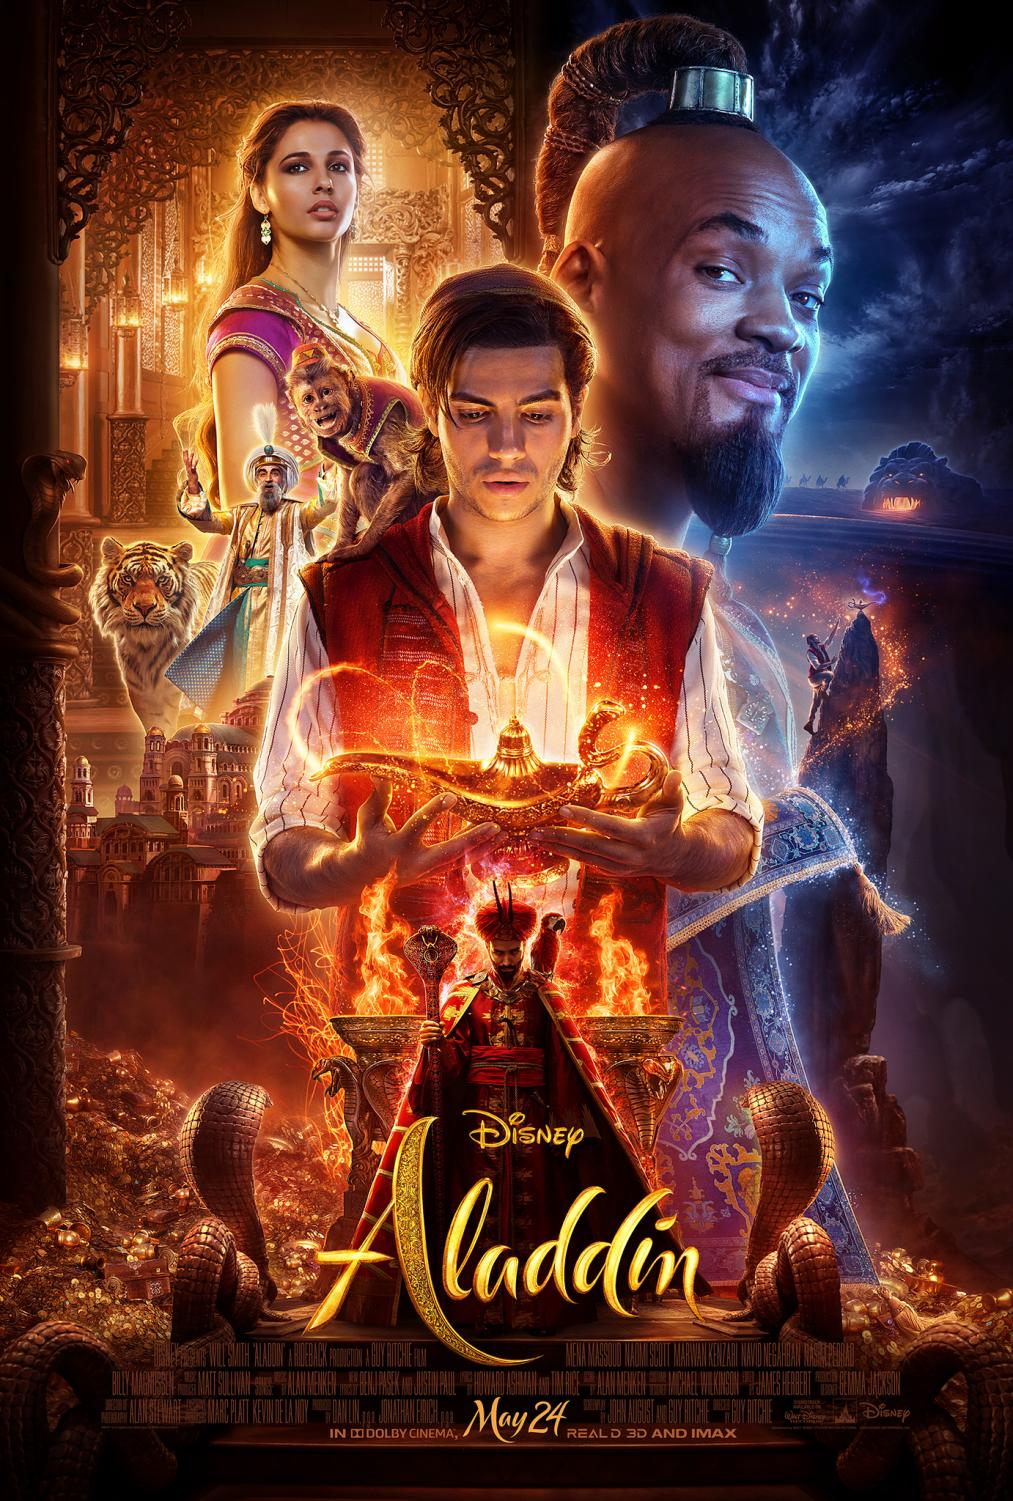 Aladdin goes on a magical adventure after finding a lamp that releases a genie.